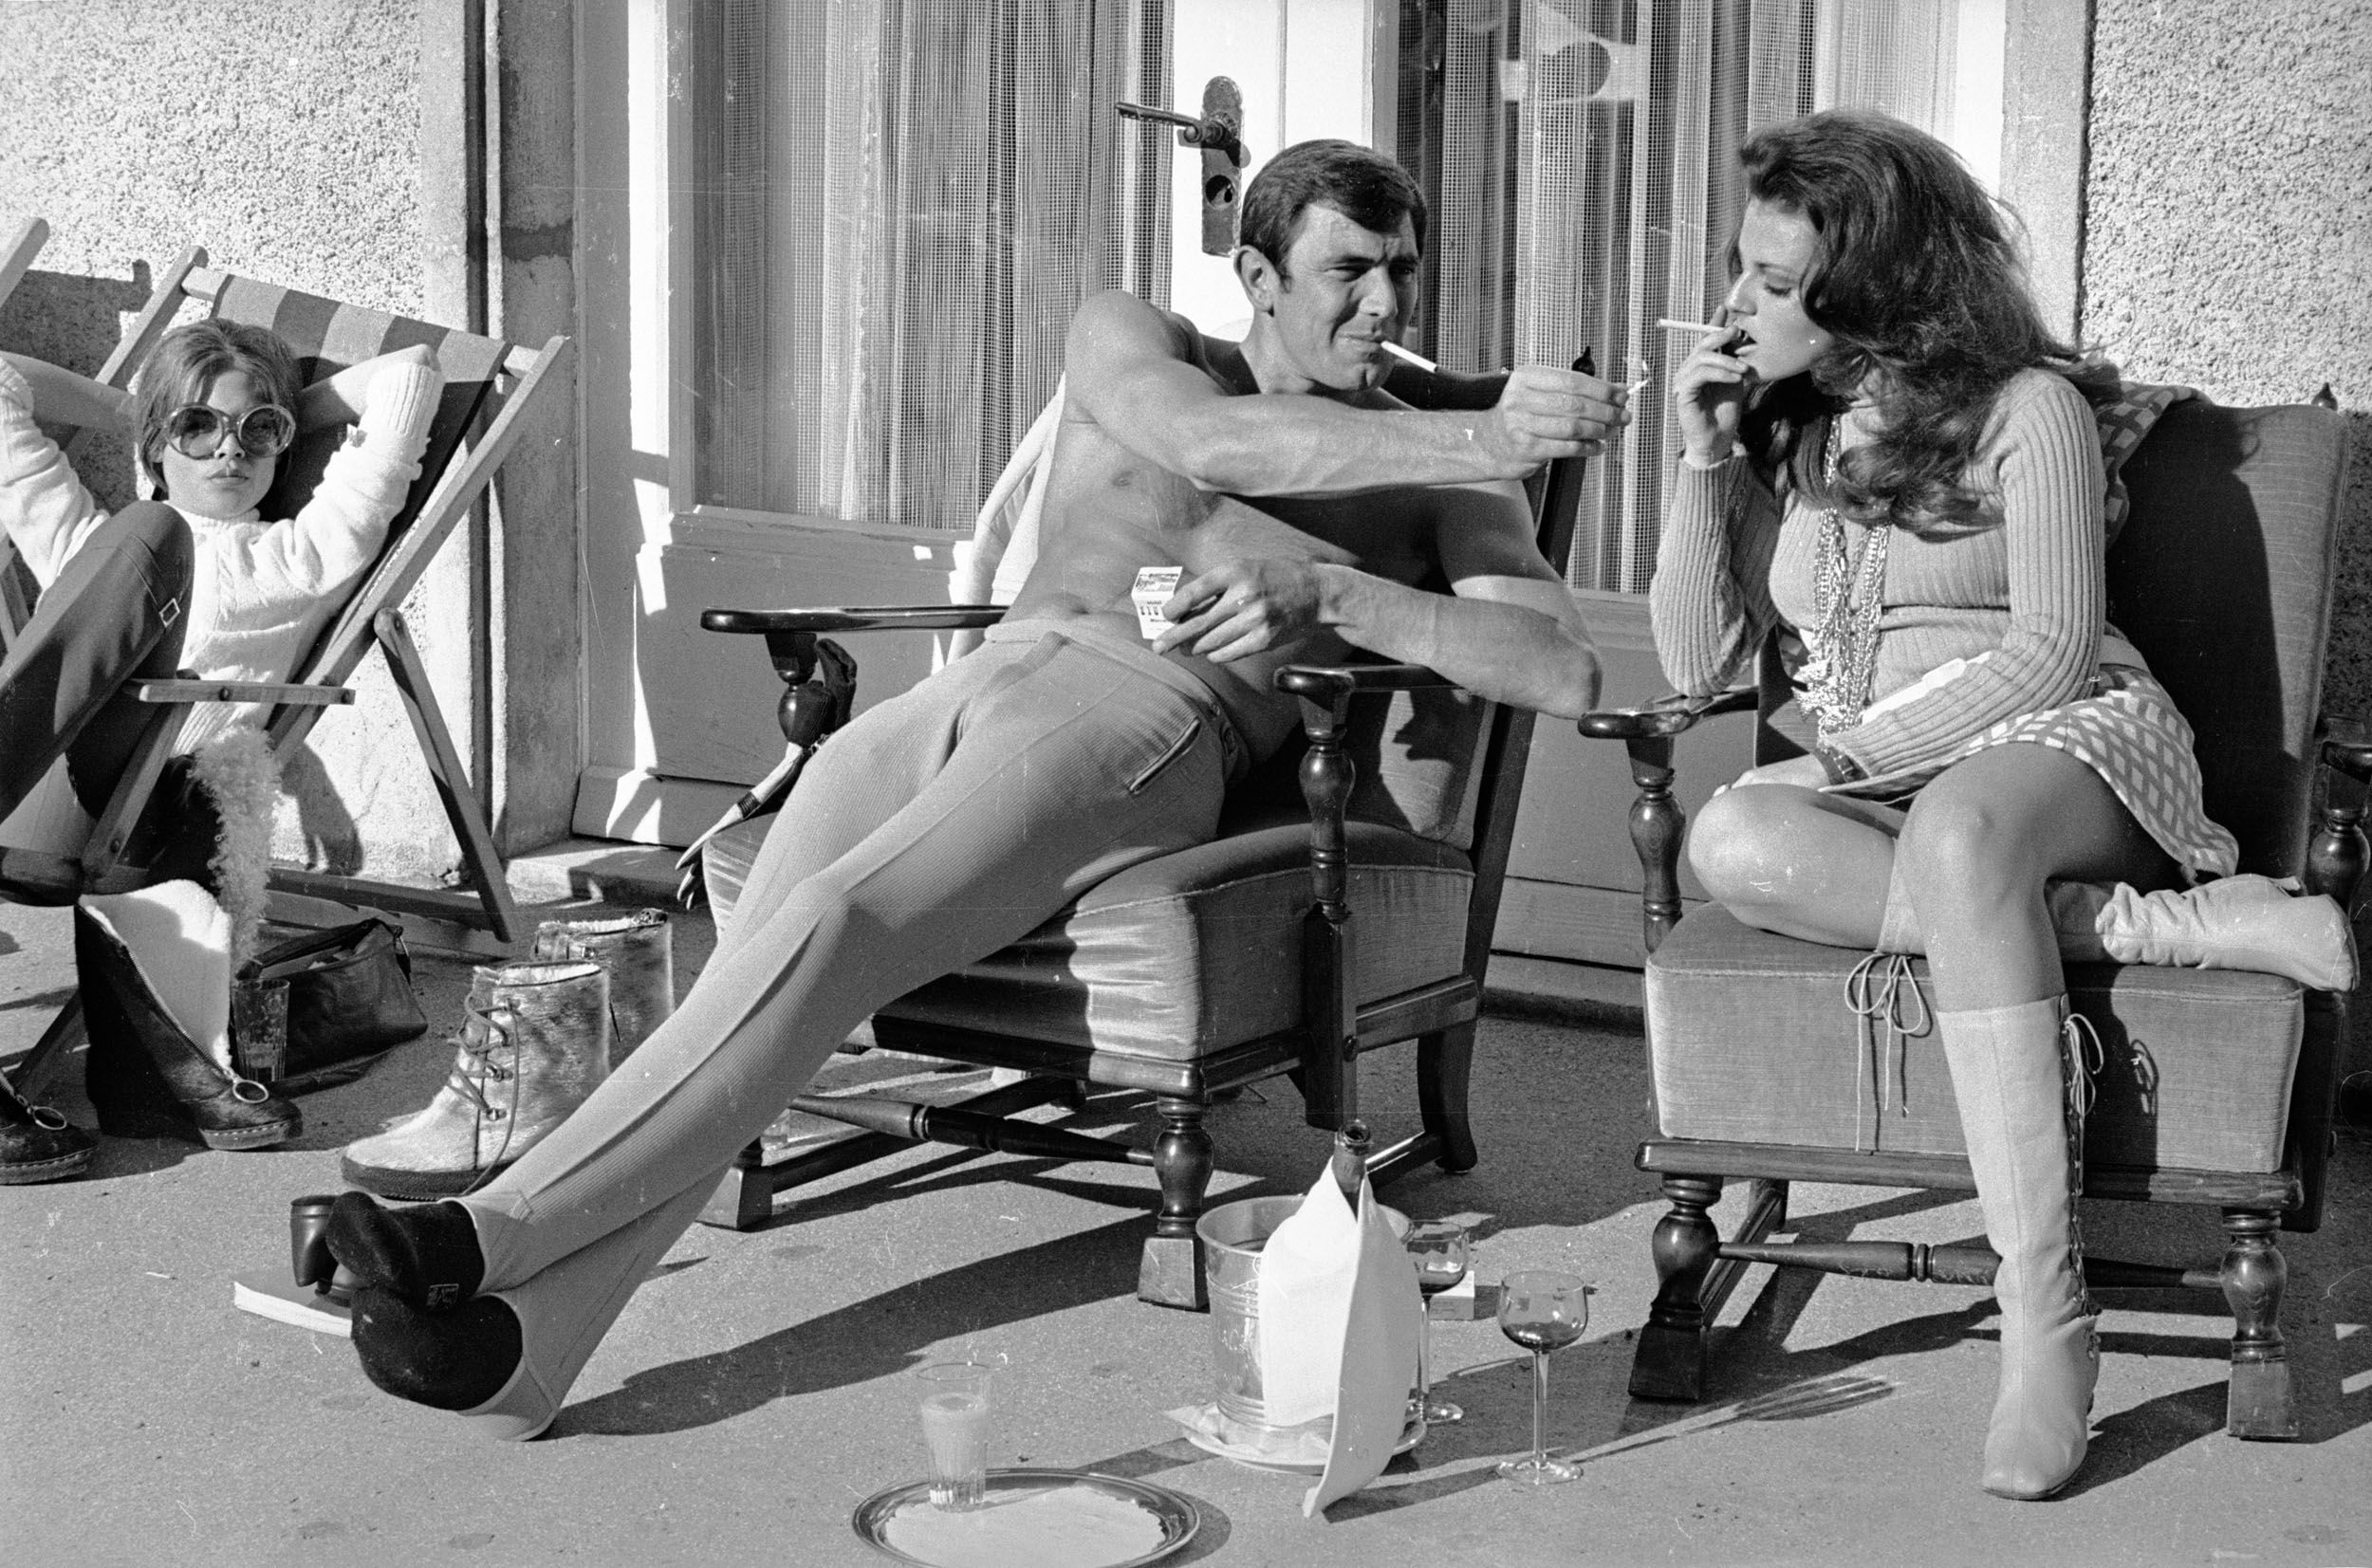 George Lazenby offers co-star Helena Ronee a light, while filming On Her Majesty's Secret Service.